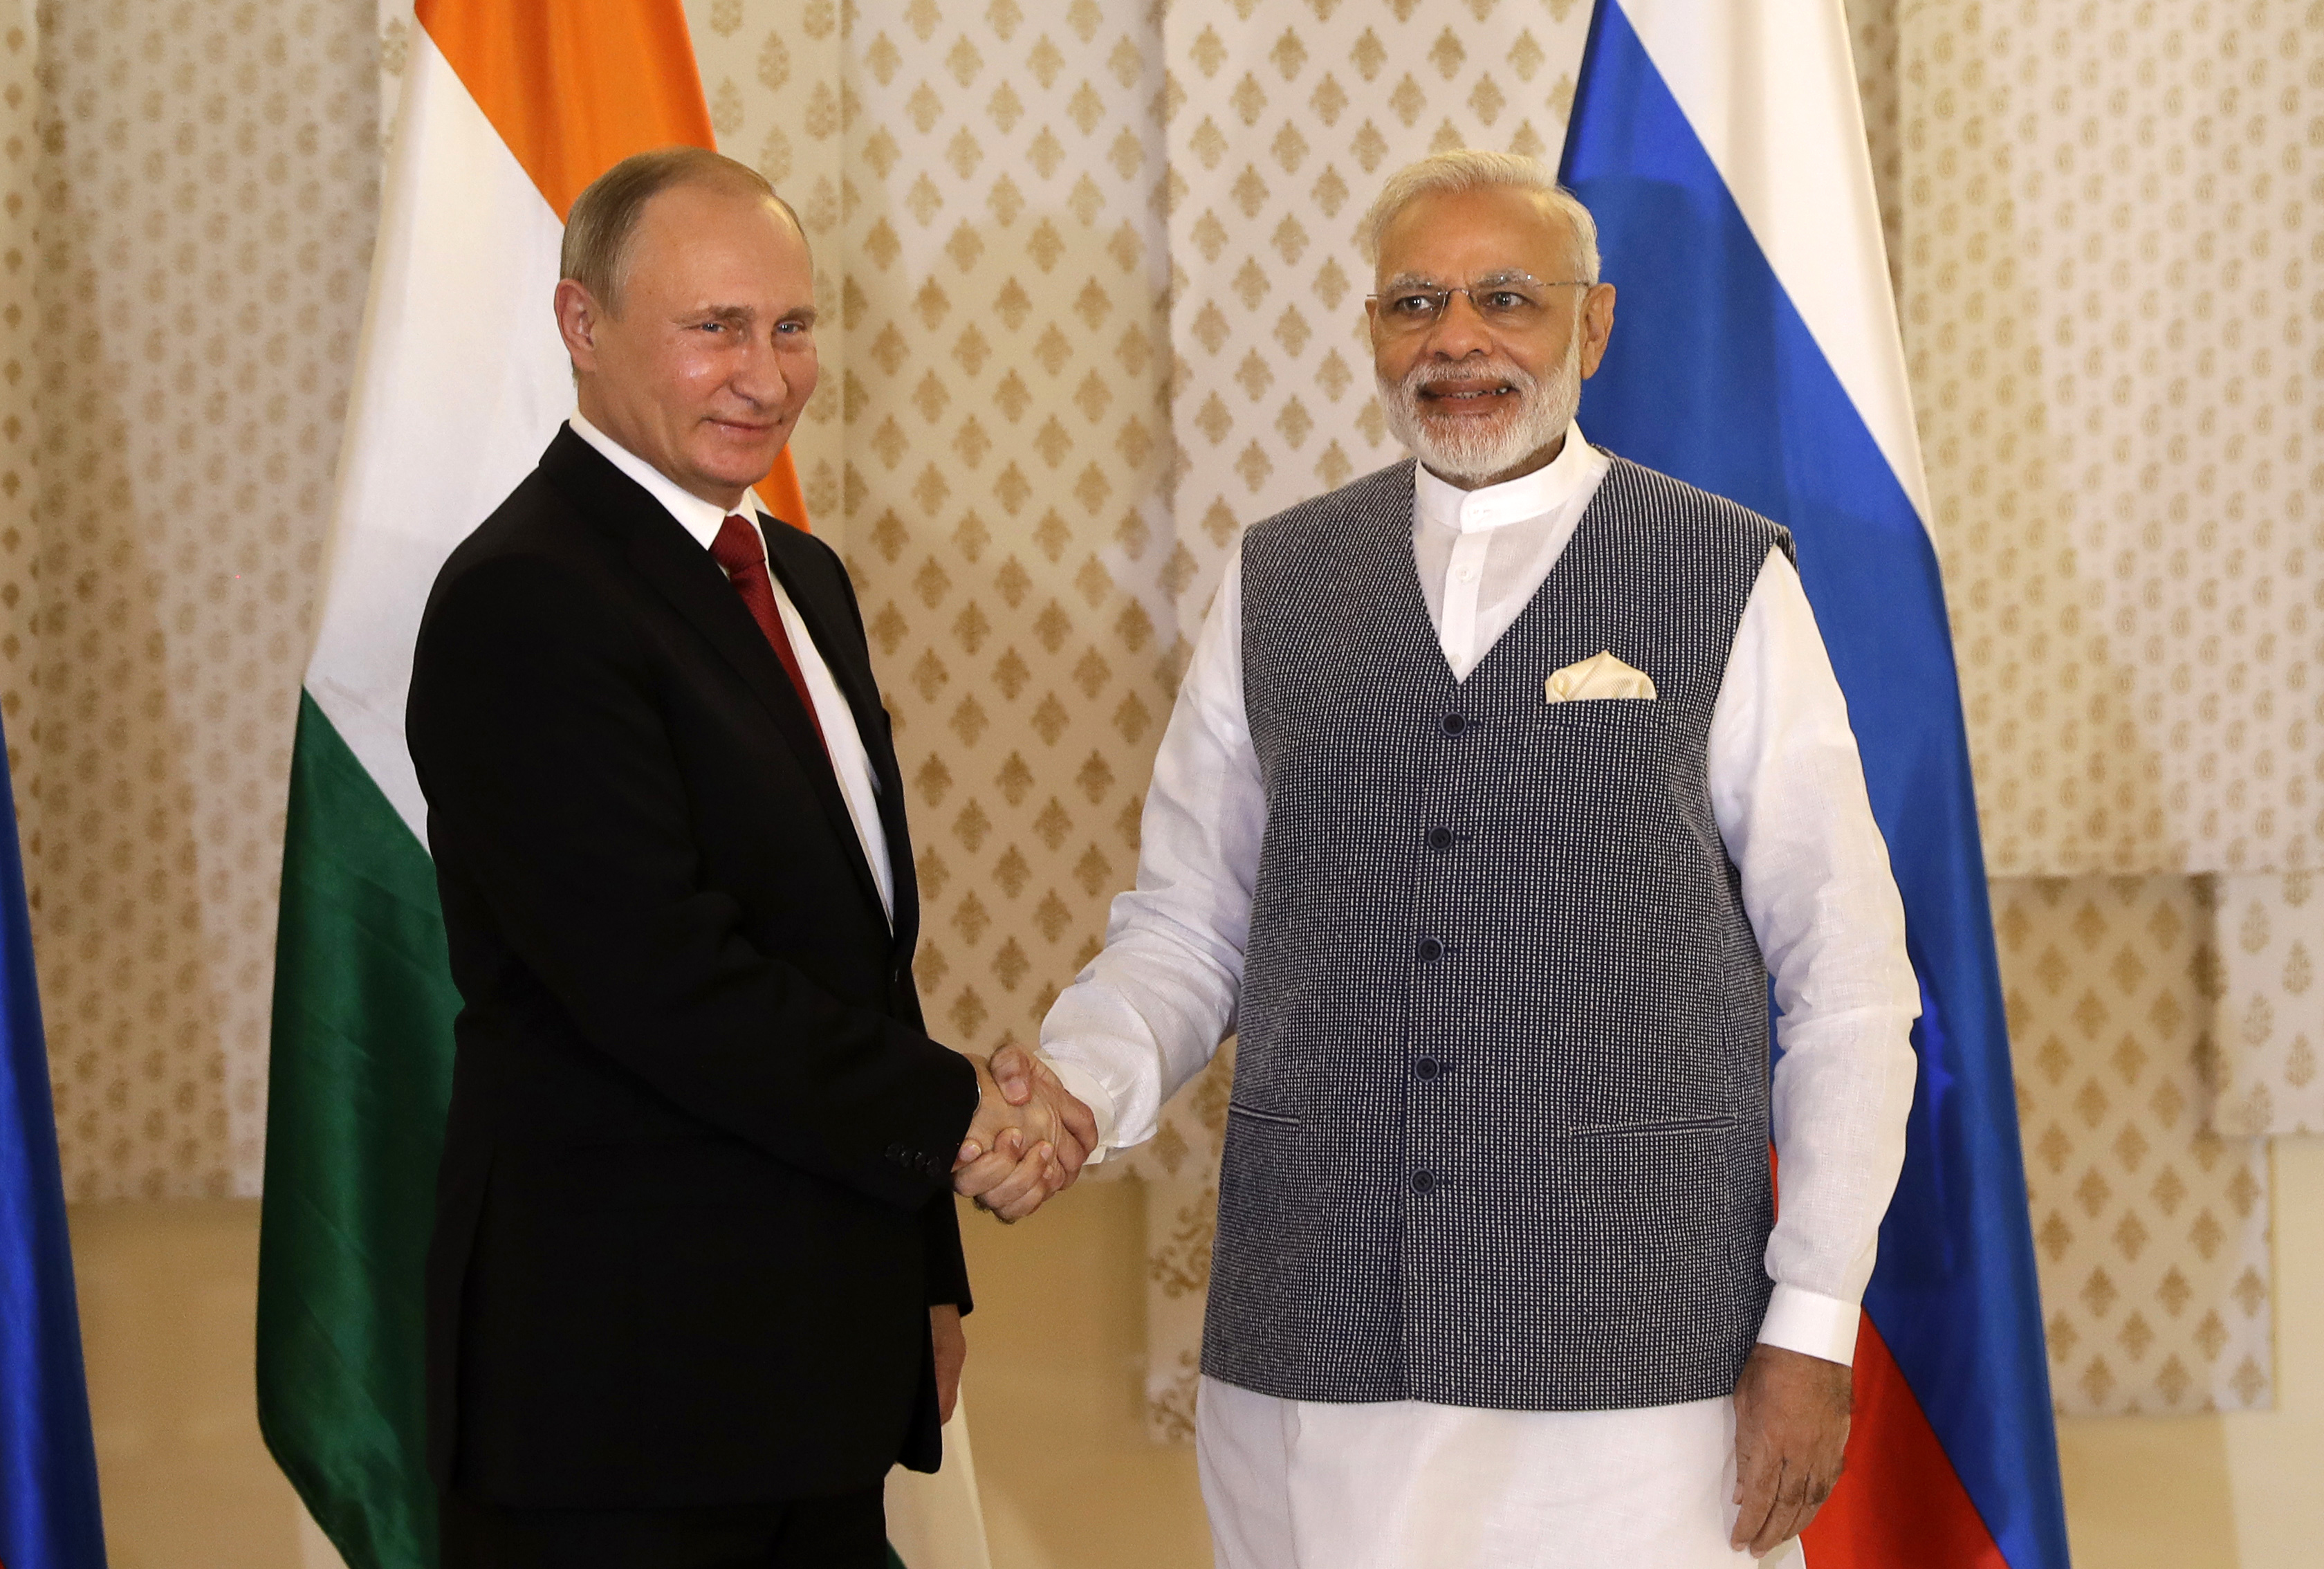 Indian Prime Minister Narendra Modi shakes hand with Russian President Vladimir Putin prior to their annual bilateral meeting, on the sidelines of the BRICS summit, in Goa, Oct. 15, 2016.